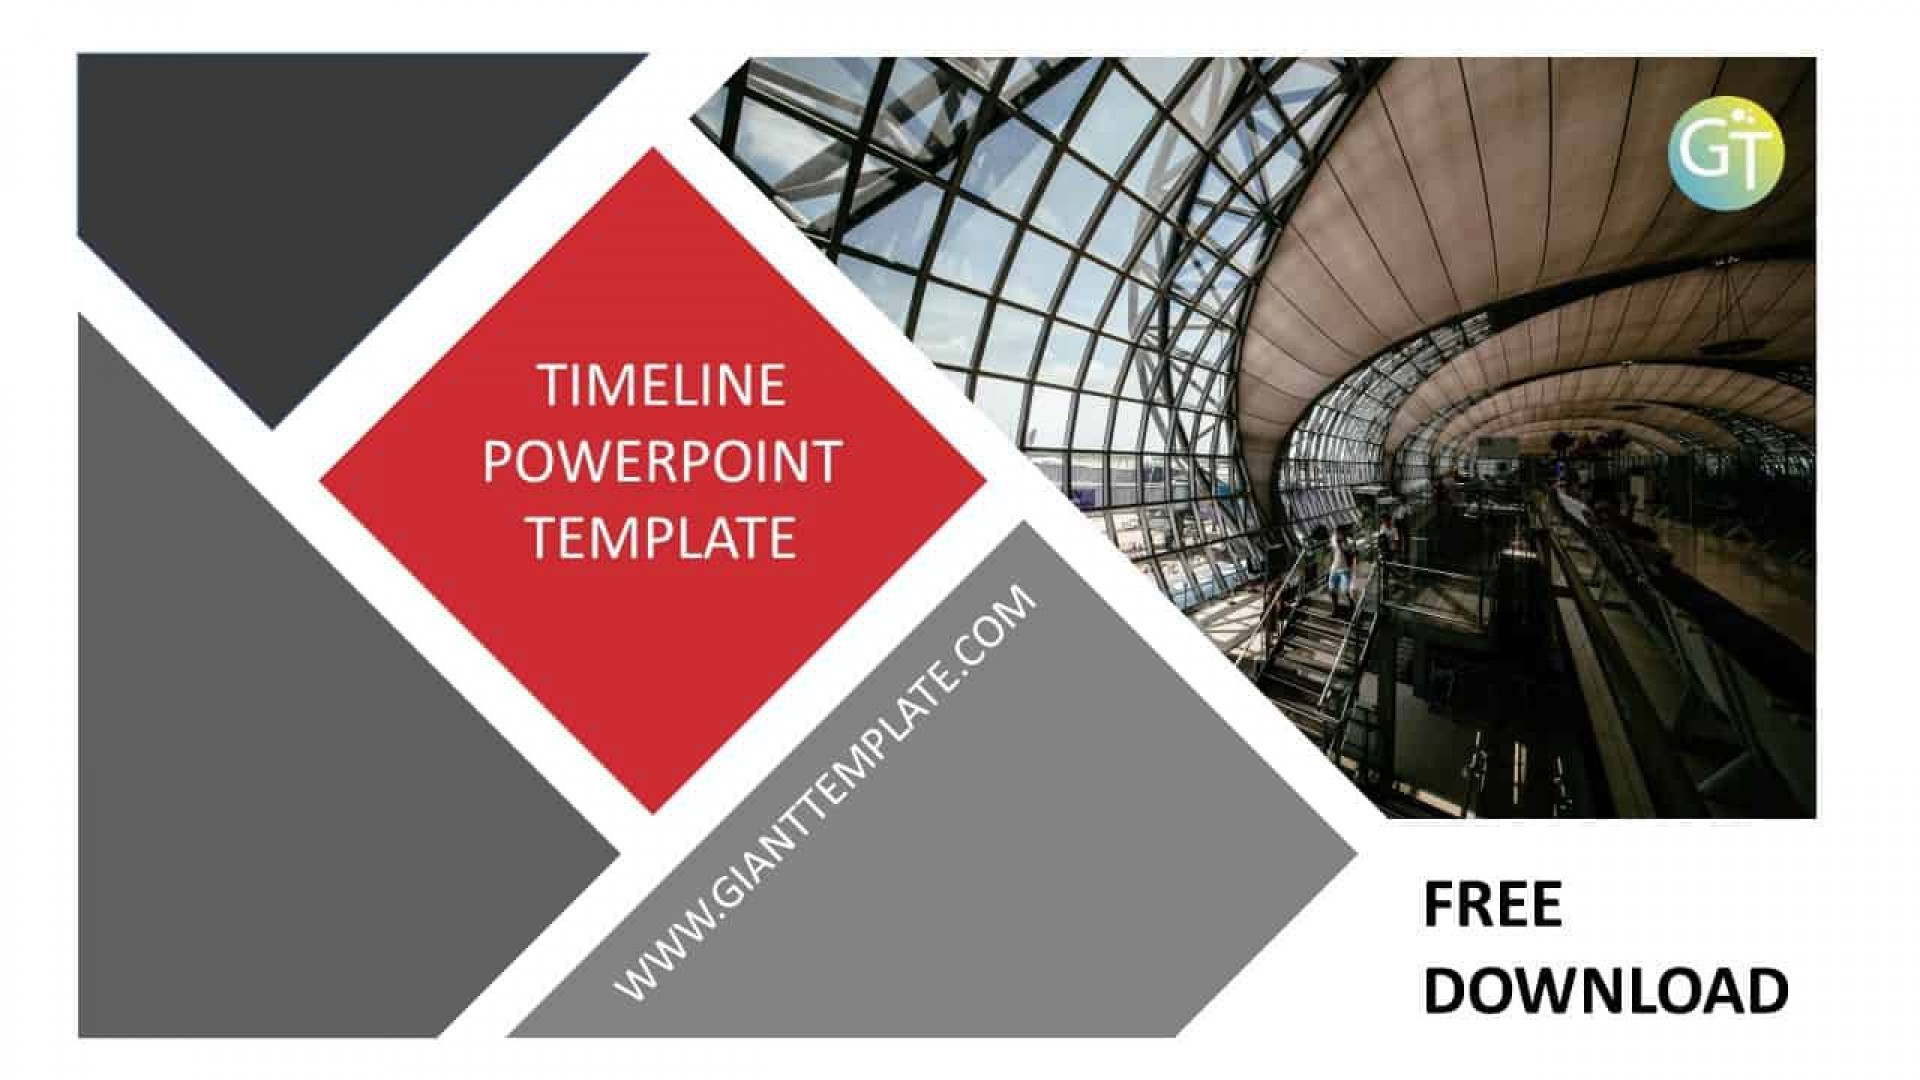 007 Fantastic Timeline Template Powerpoint Download Concept  Editable Downloadable Project Ppt Free1920